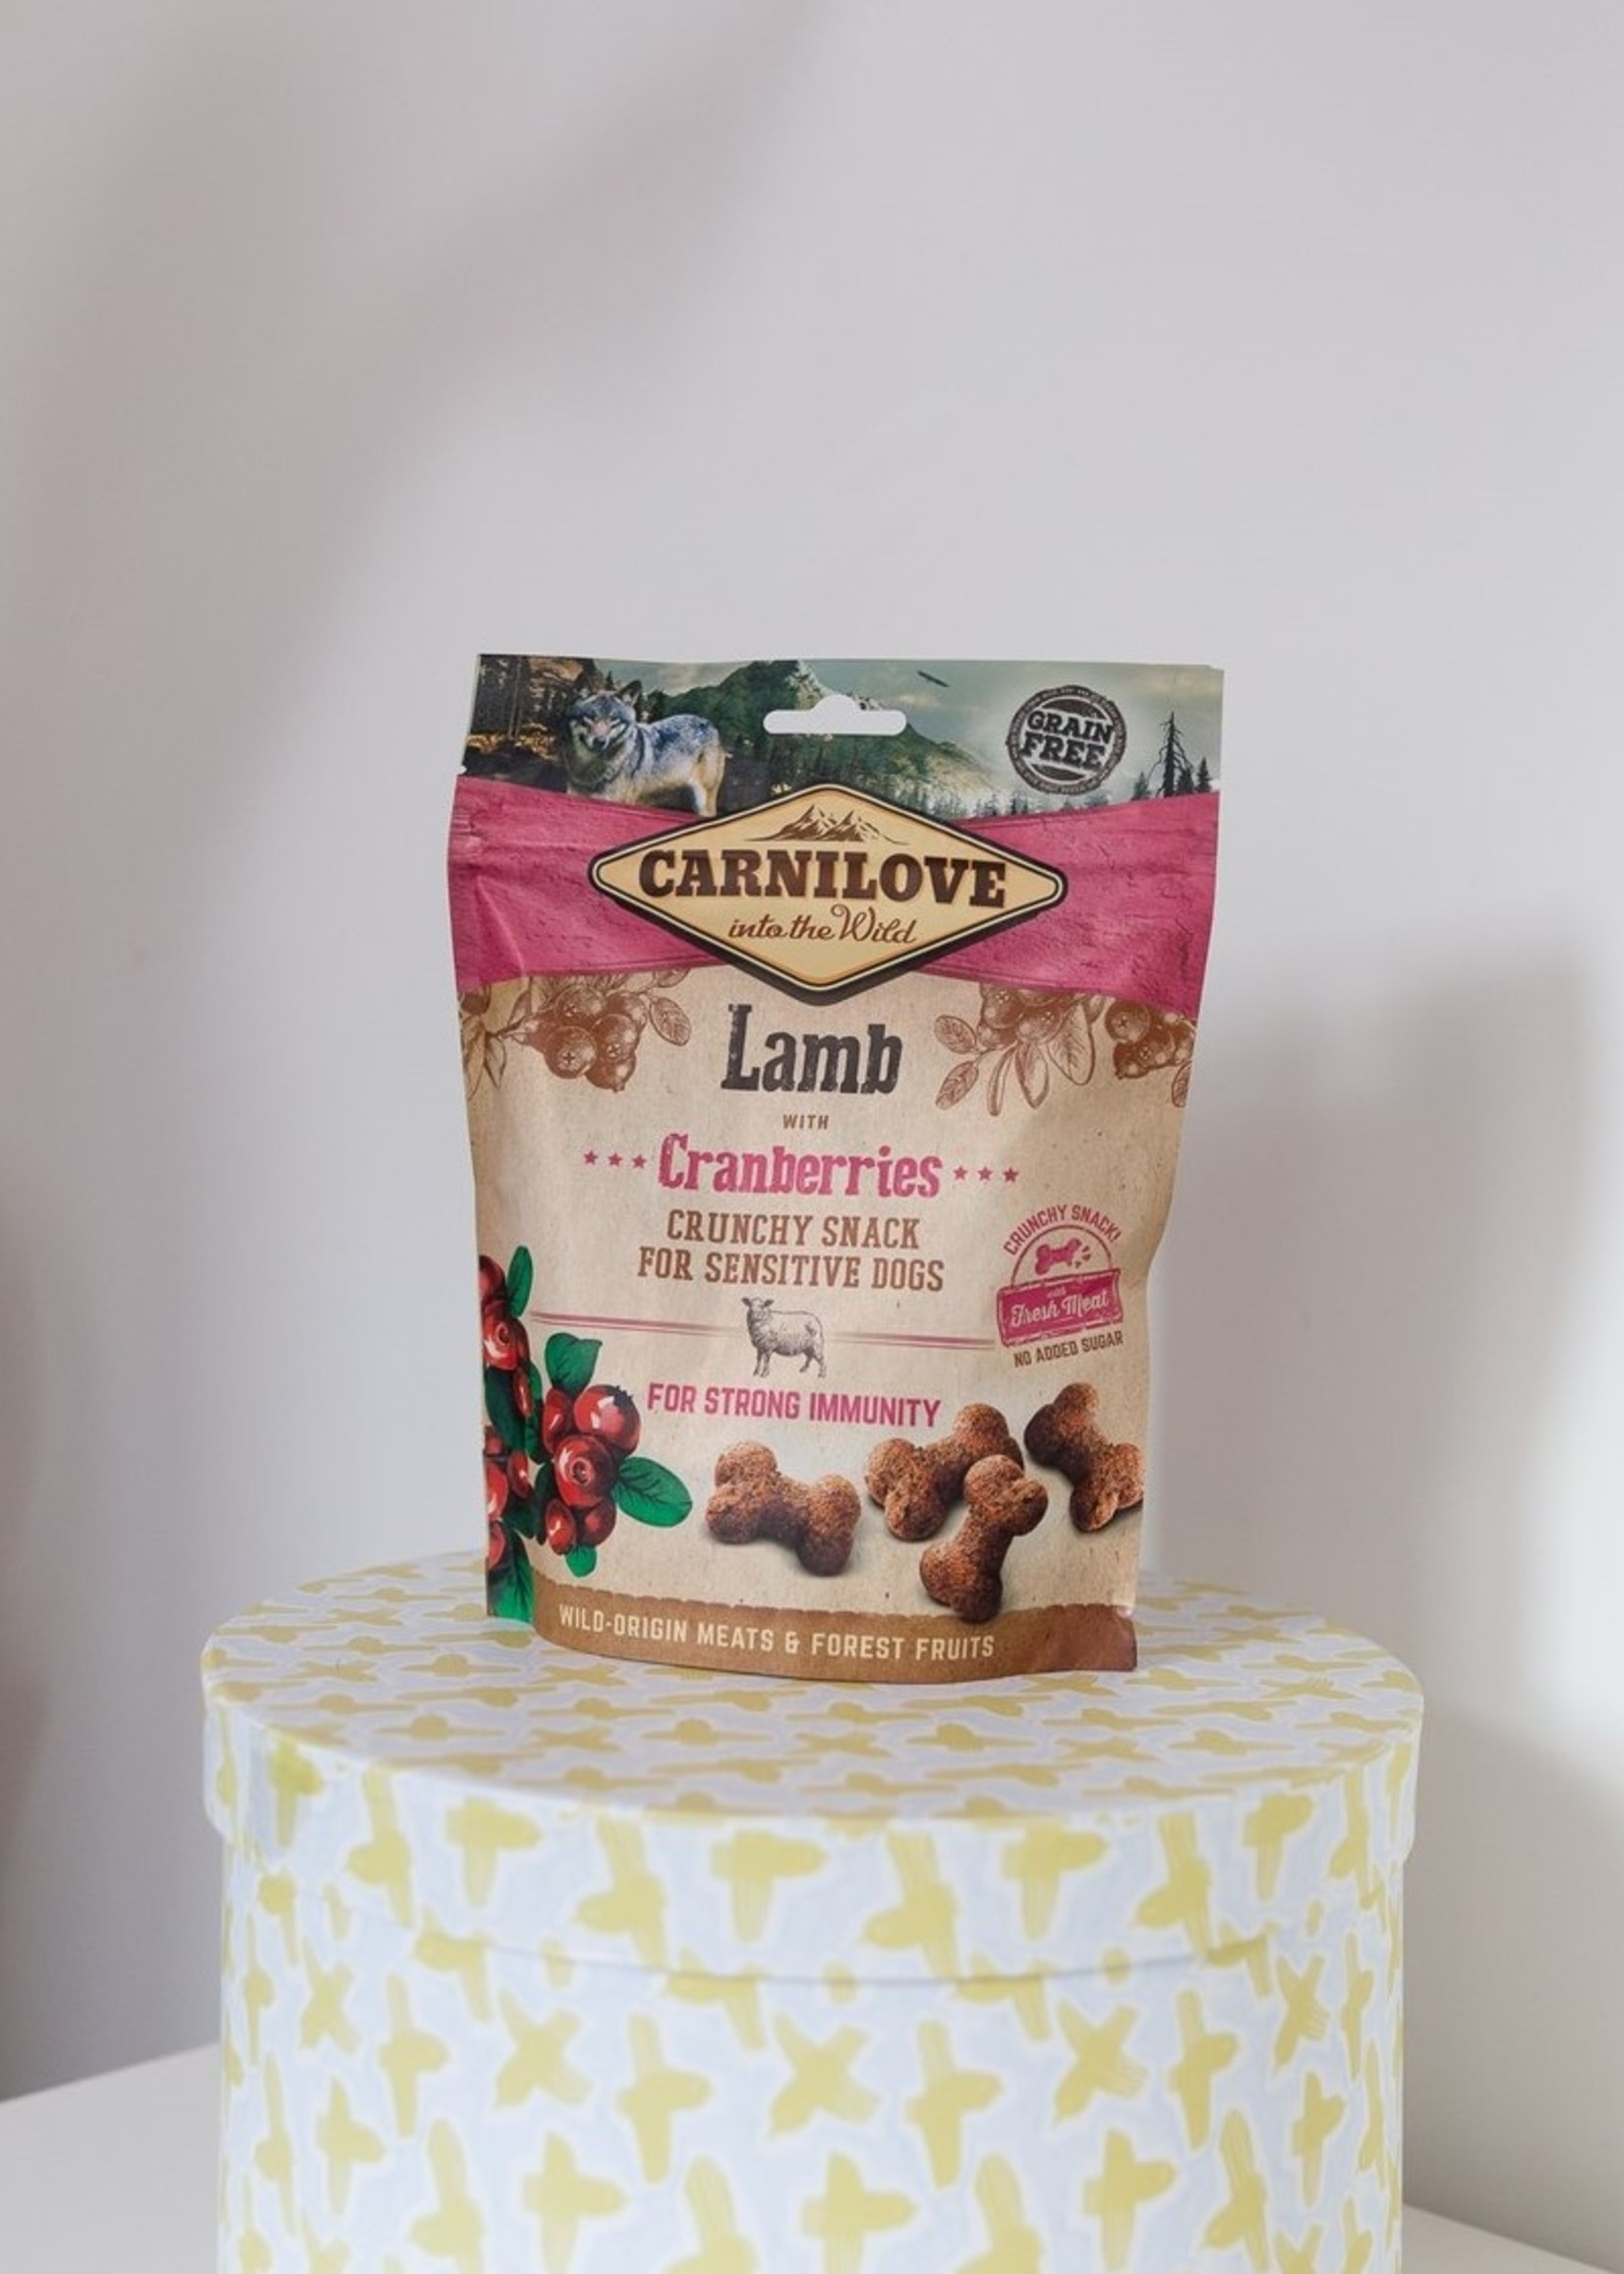 Carnilove Crunchy Snack Lam / Cranberries